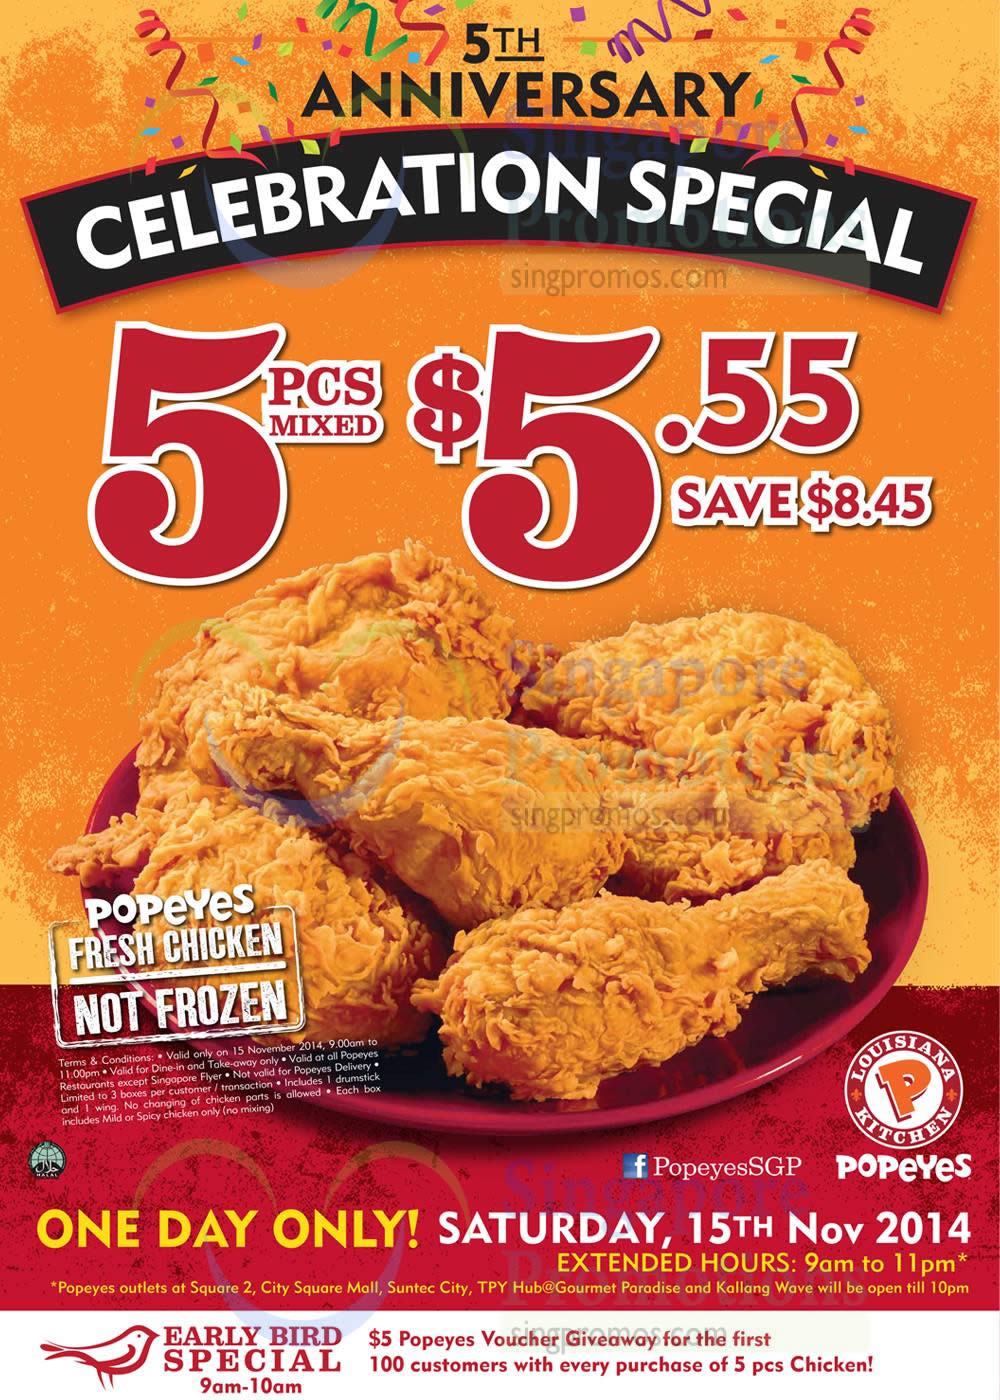 Popeyes 5 55 5pcs Chicken 1 Day Promo 15 Nov 2014